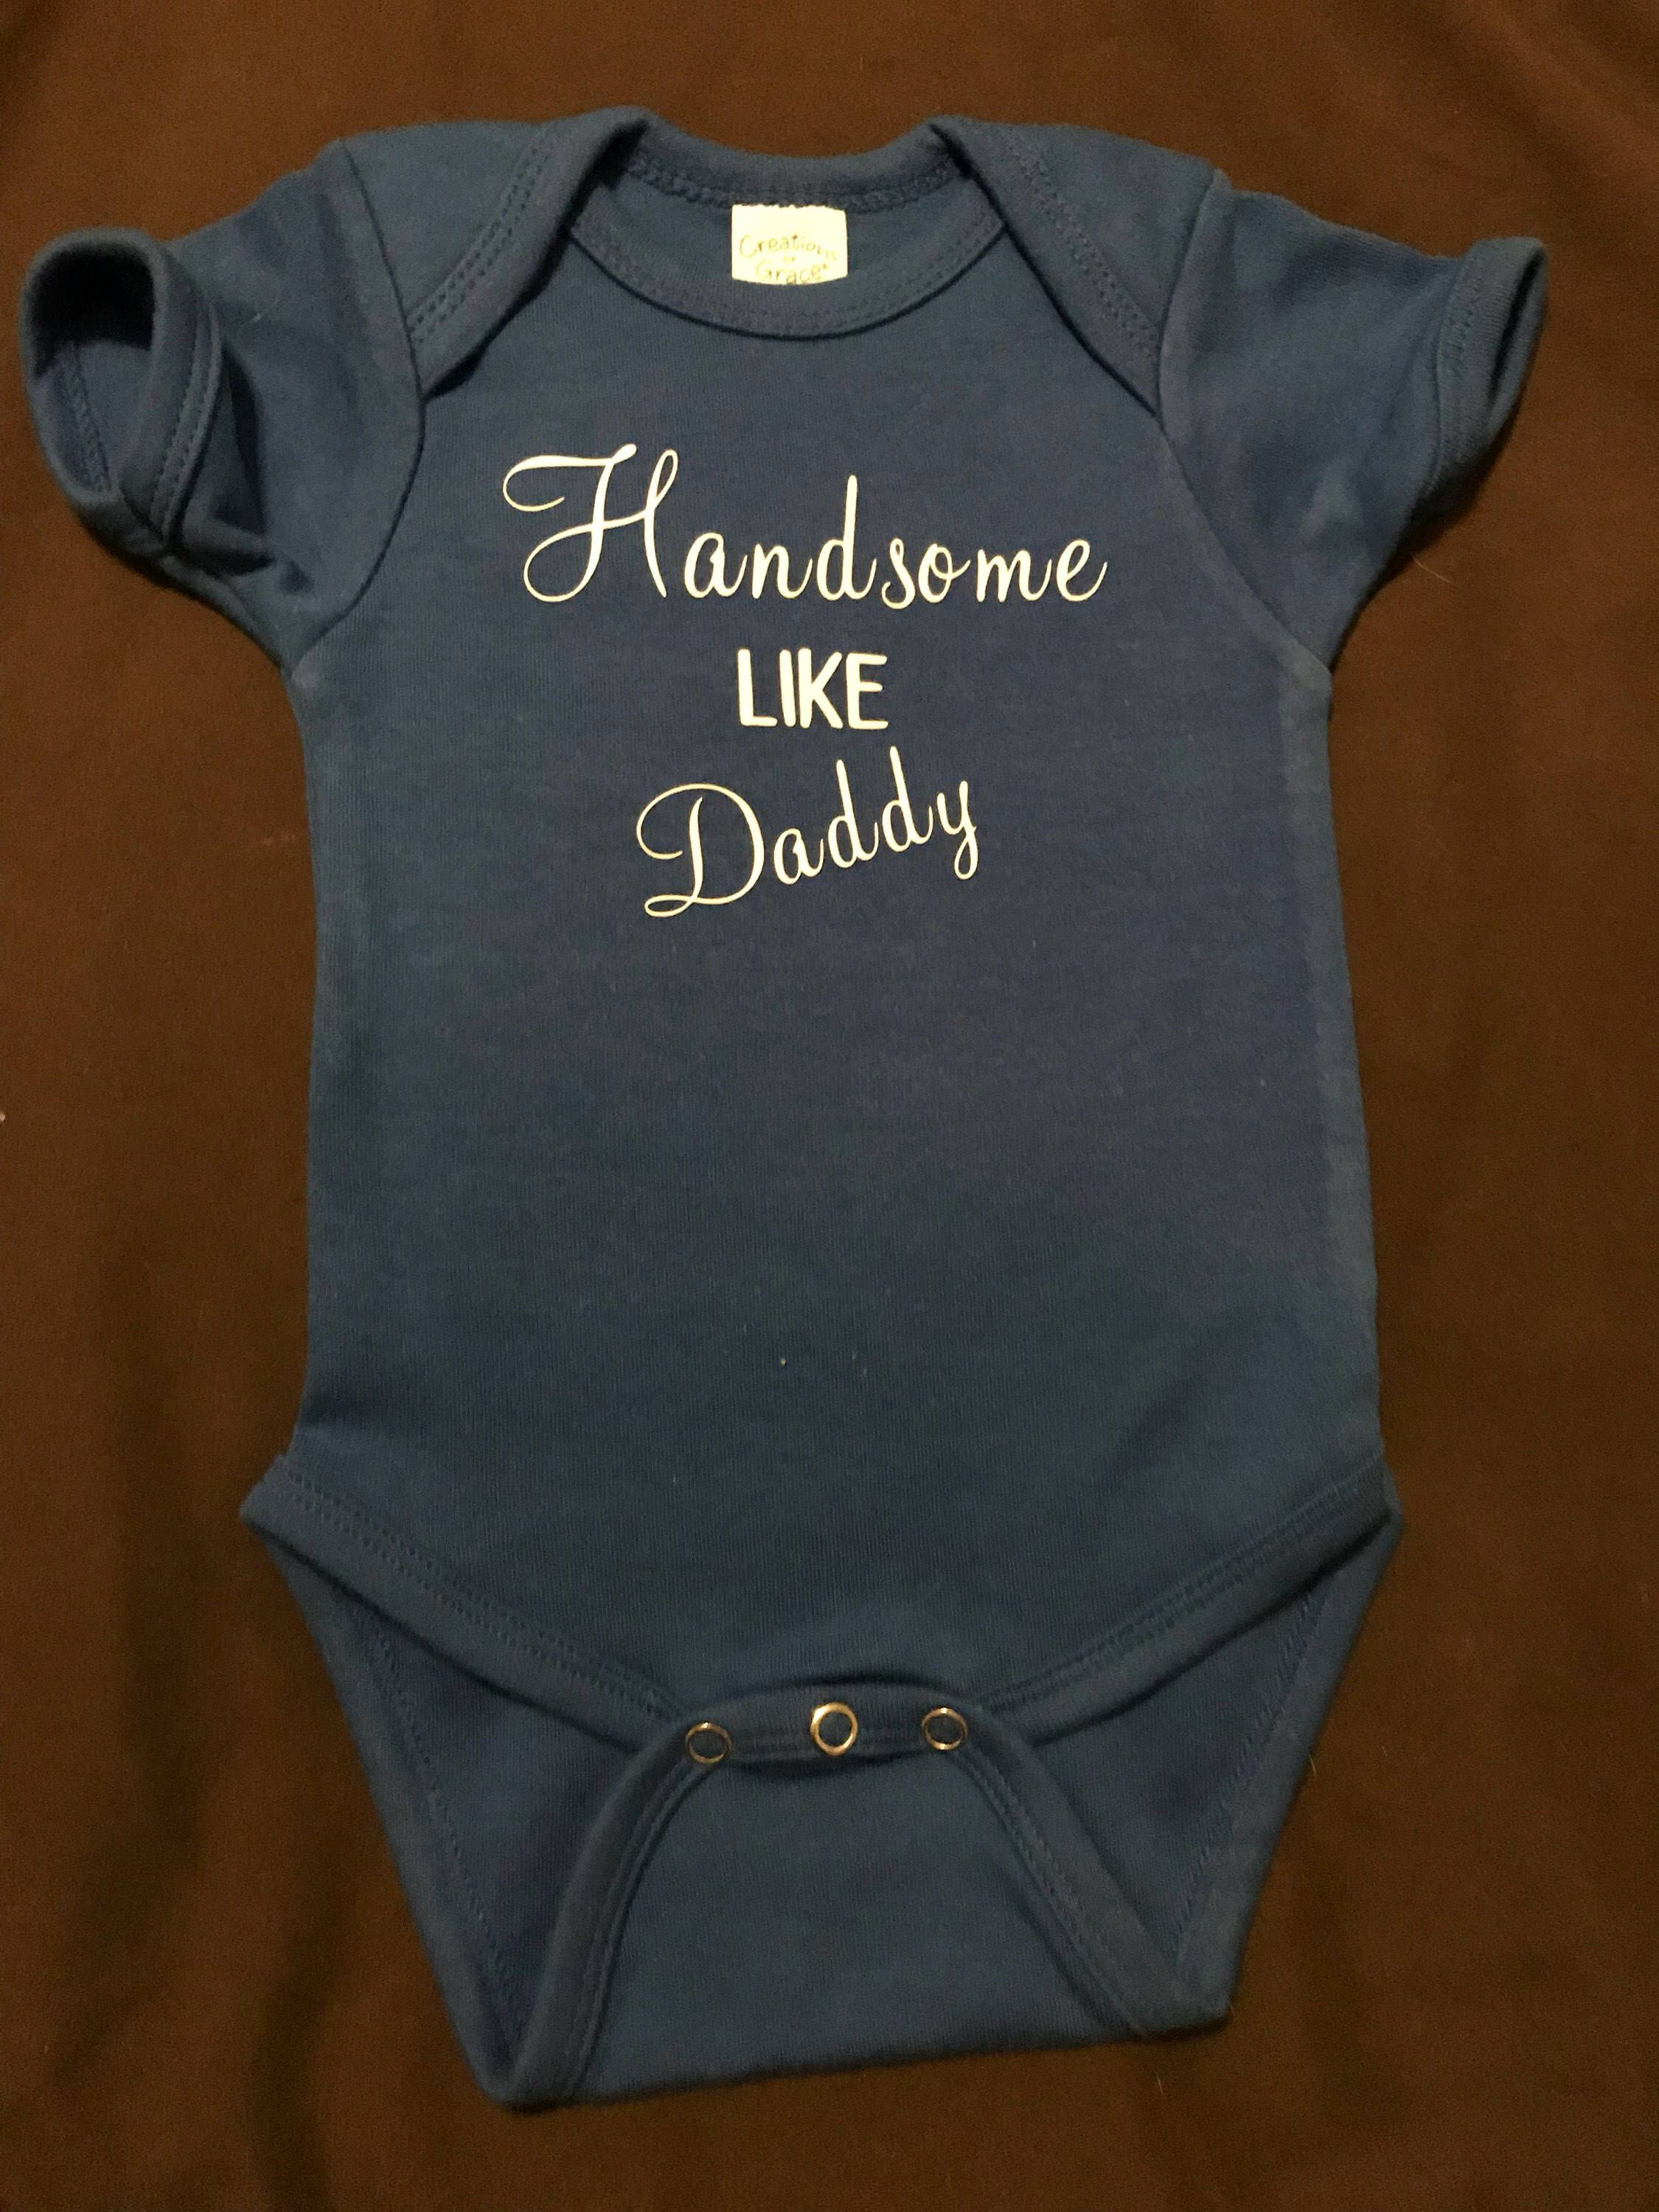 1eedd4b58 Excited to share this item from my #etsy shop: Handsome Like Daddy - Baby  Onsies #children #baby #handsomelikedaddy #daddy #handsome #gohomeoutfit  #boy